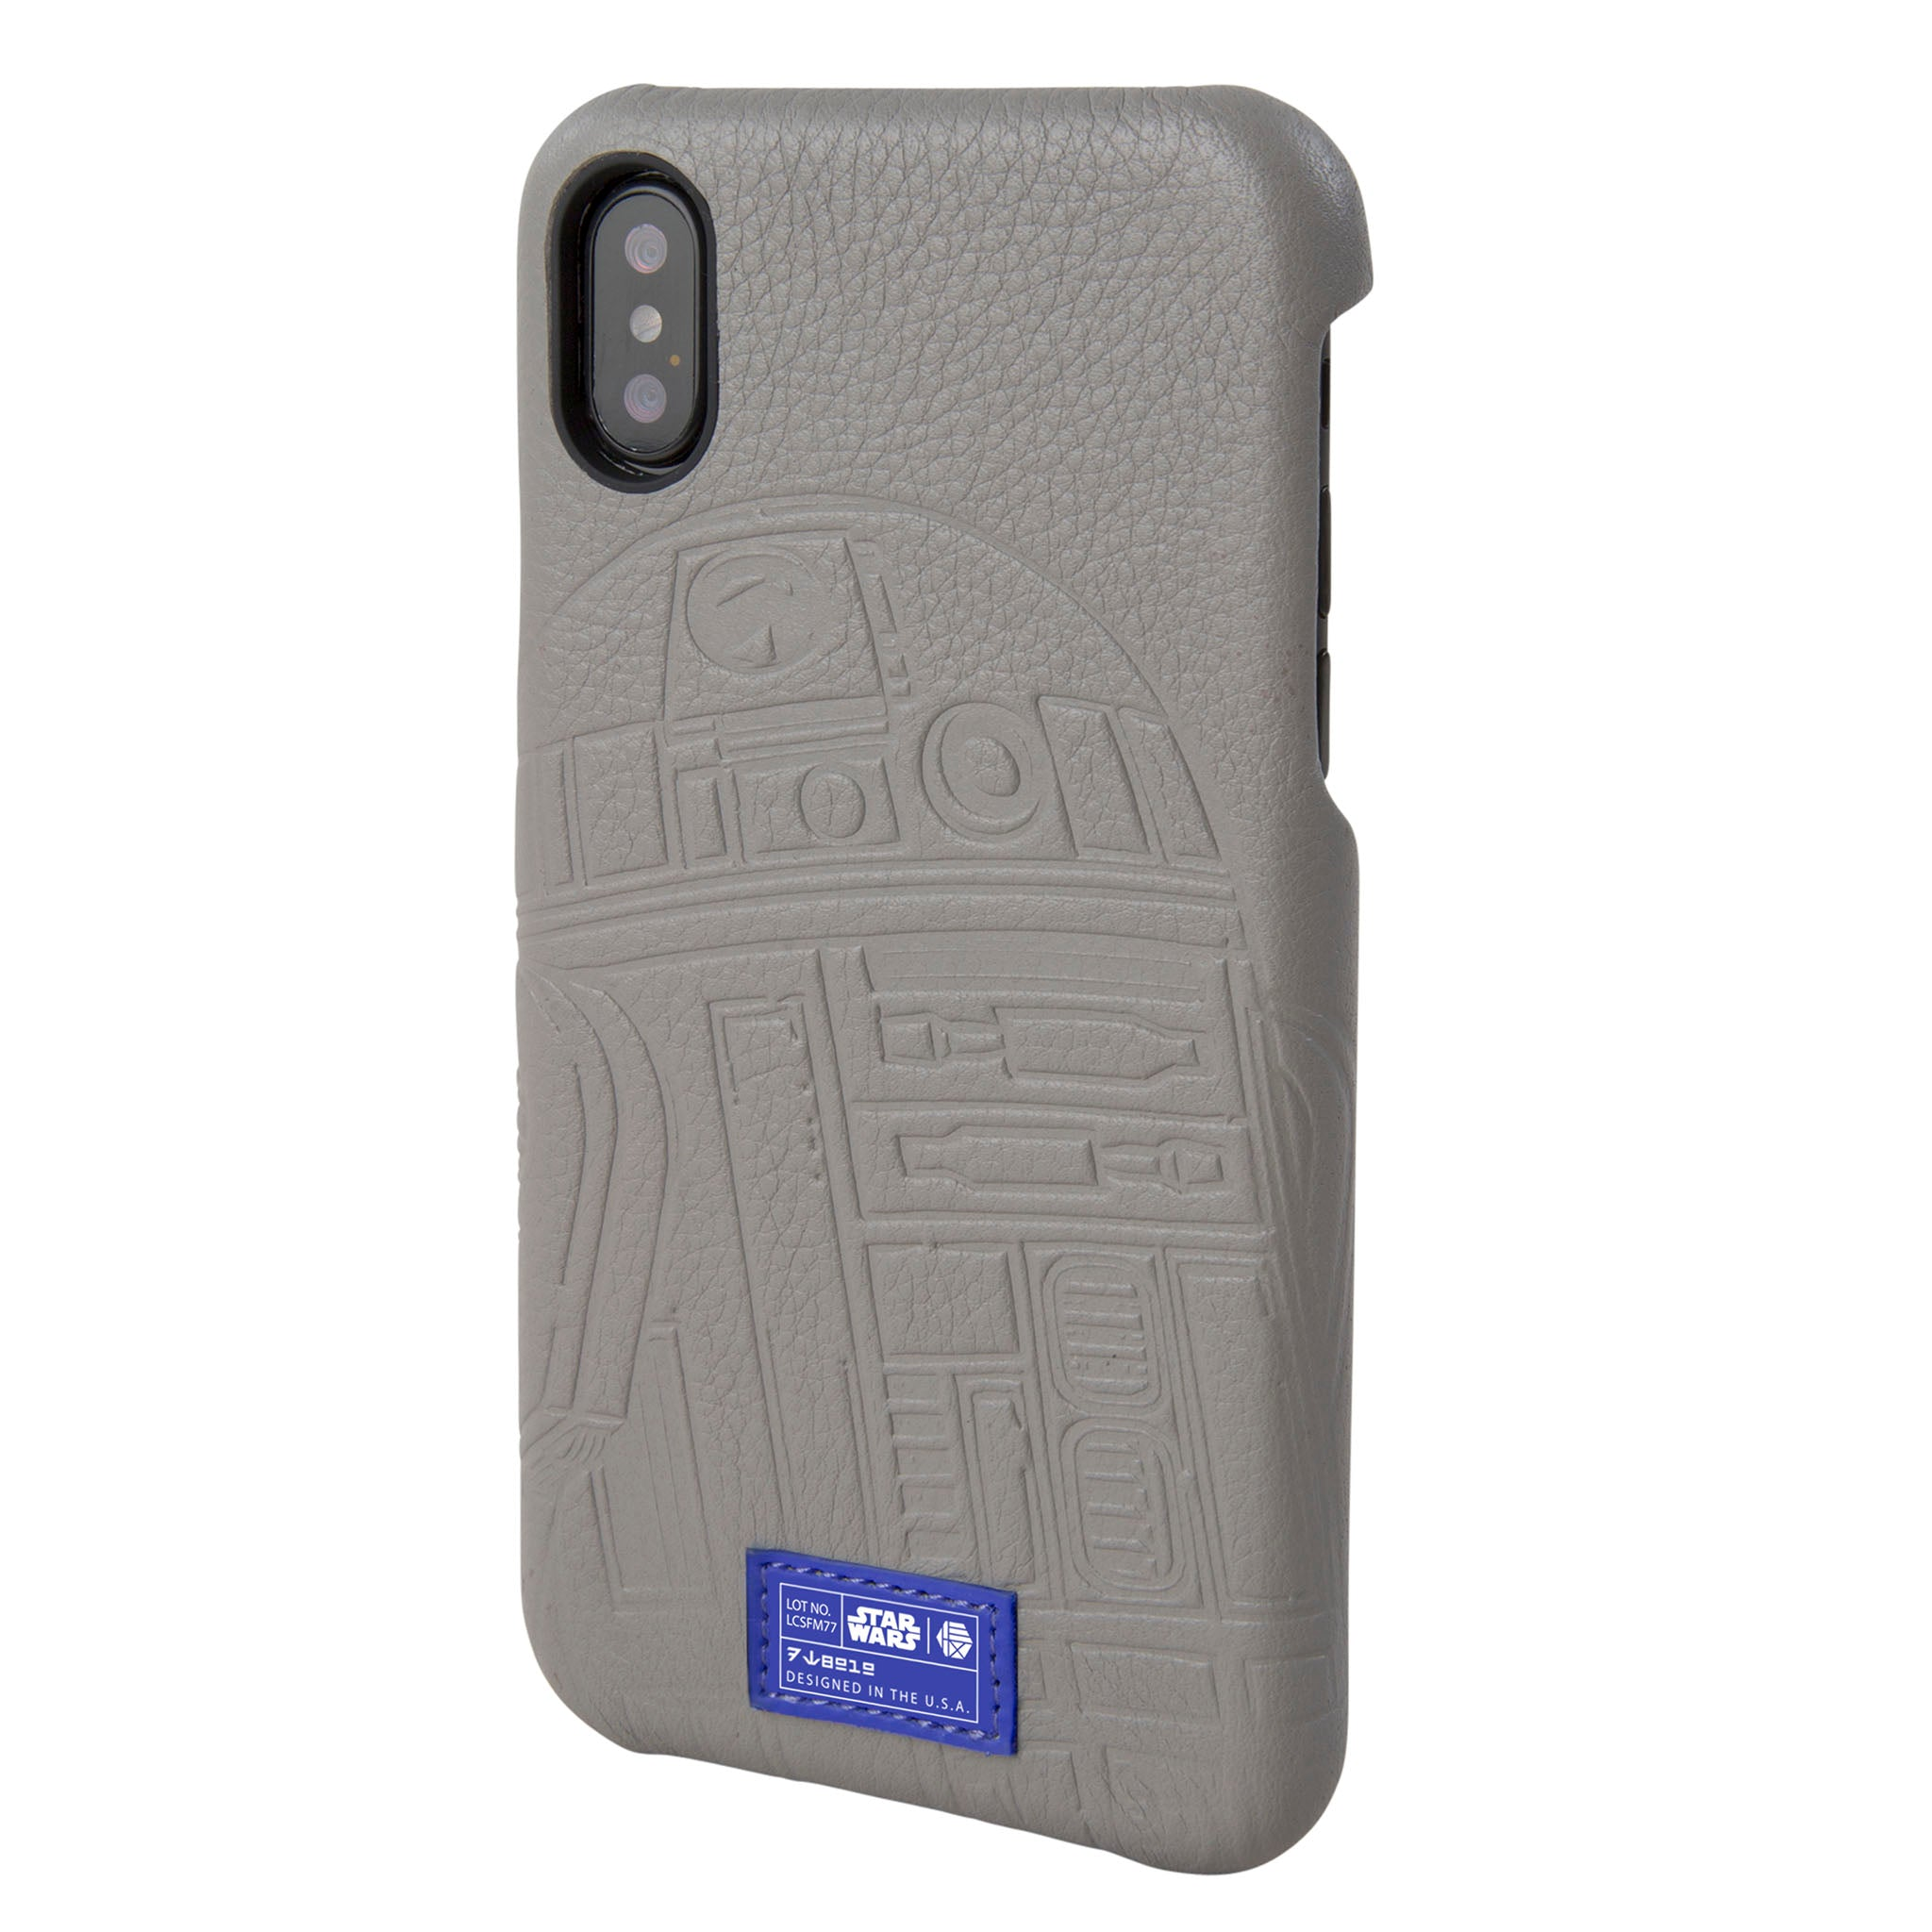 100% authentic 93f30 1090a iPhone X Cases, Star Wars Case for iPhone X, Wallet Cases, Snap Case ...